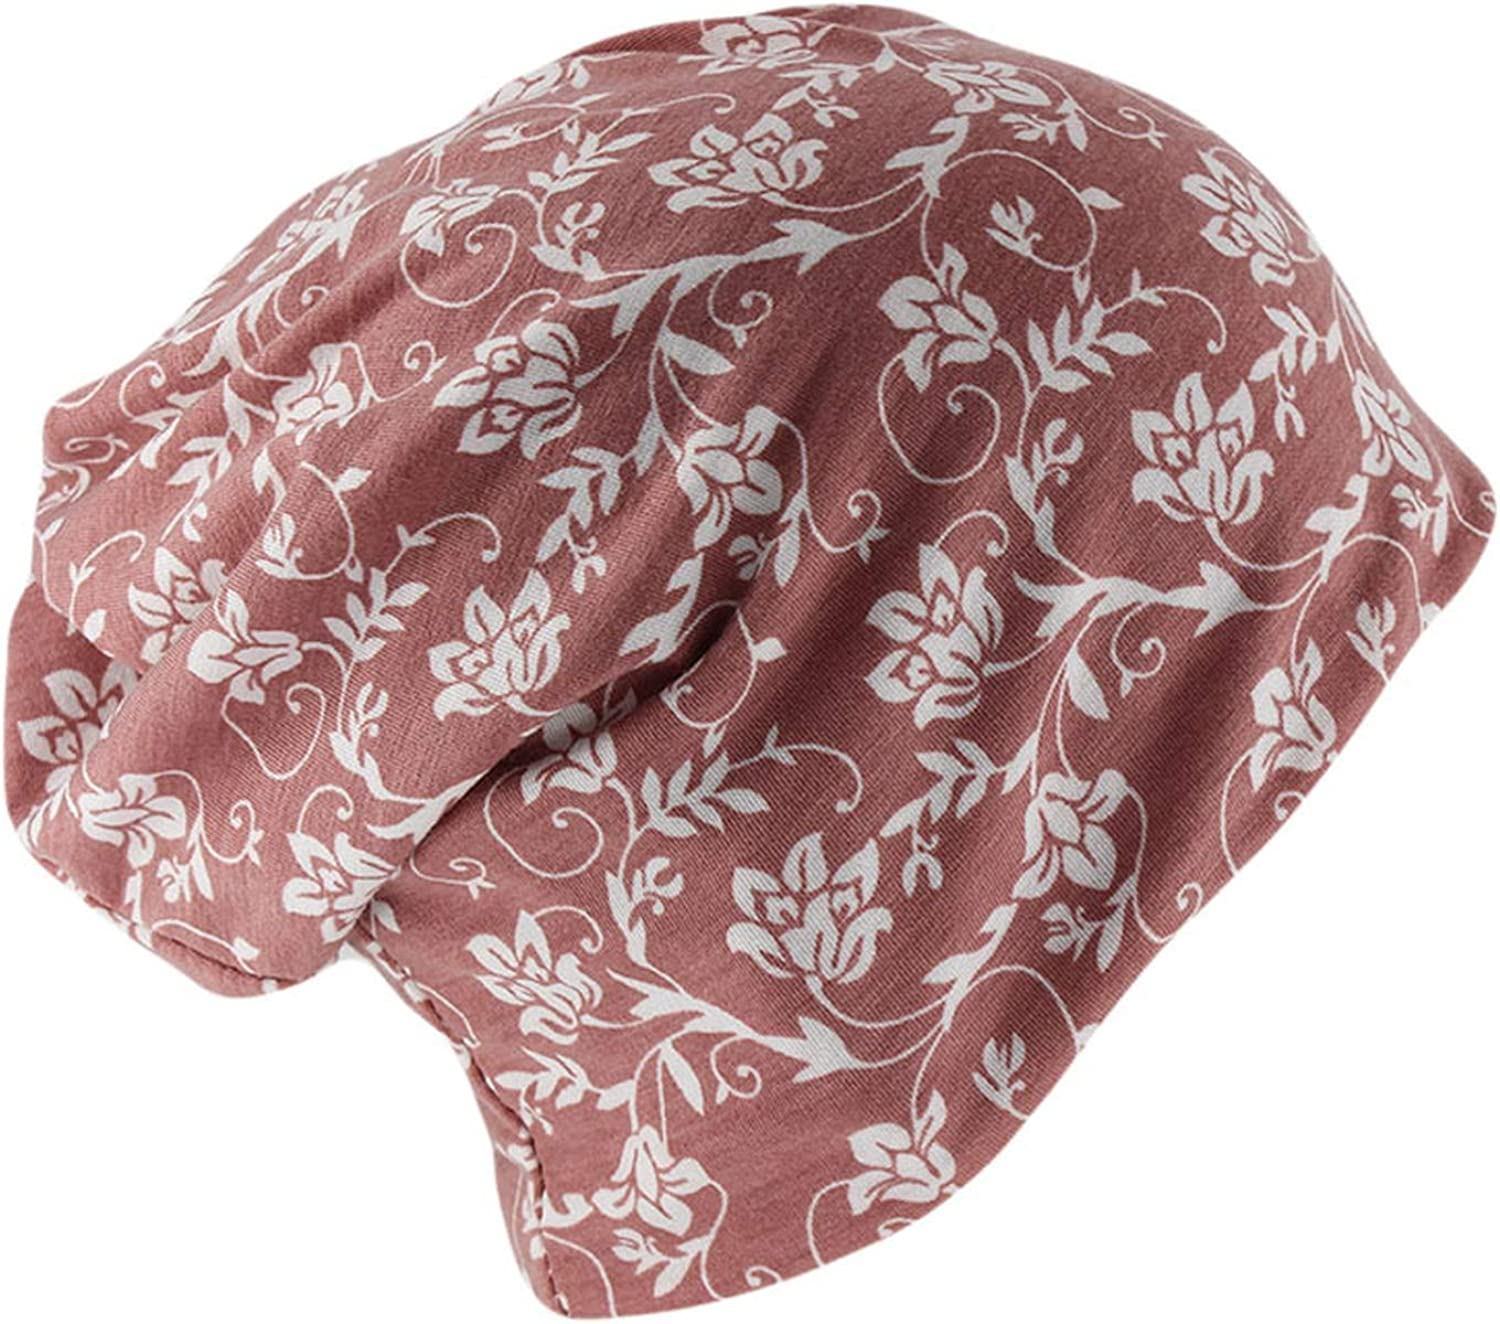 Women Floral Beanies Scarf Two Used Female Caps Casual Adult Cotton Warm Autumn Bonnet Girls Hats